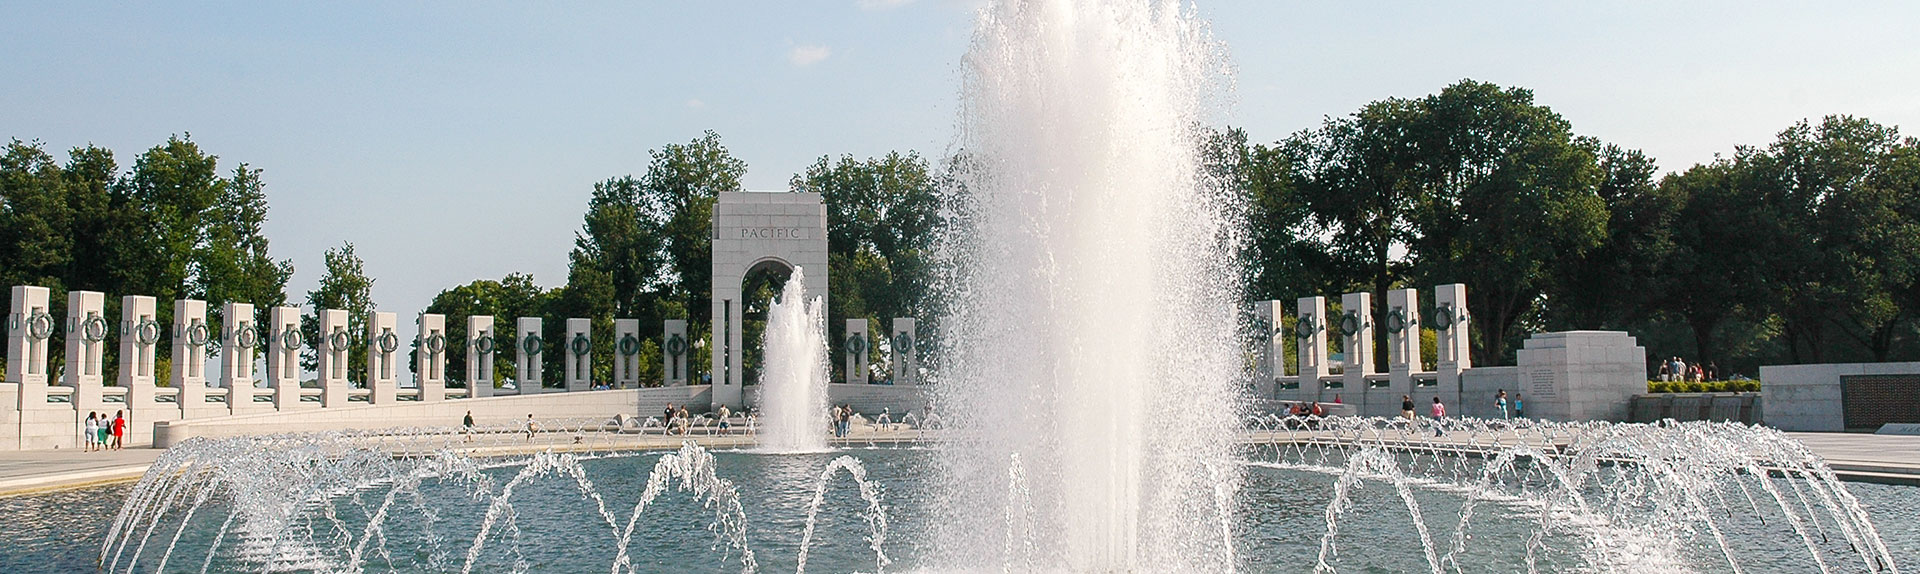 National WWII Memorial in Washington, District of Columbia